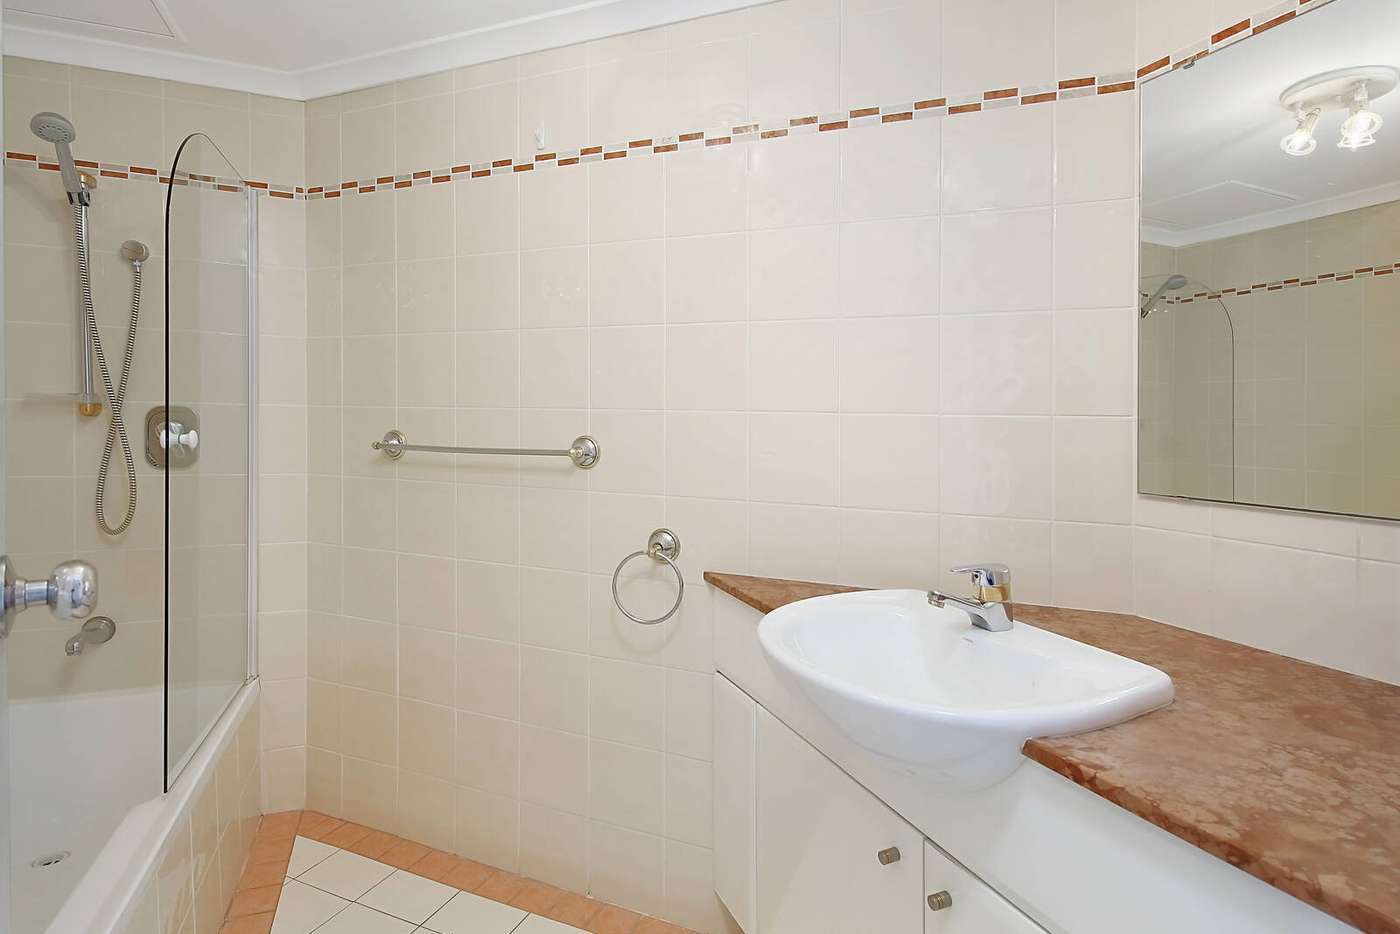 Sixth view of Homely apartment listing, 607/5 City View Road, Pennant Hills NSW 2120